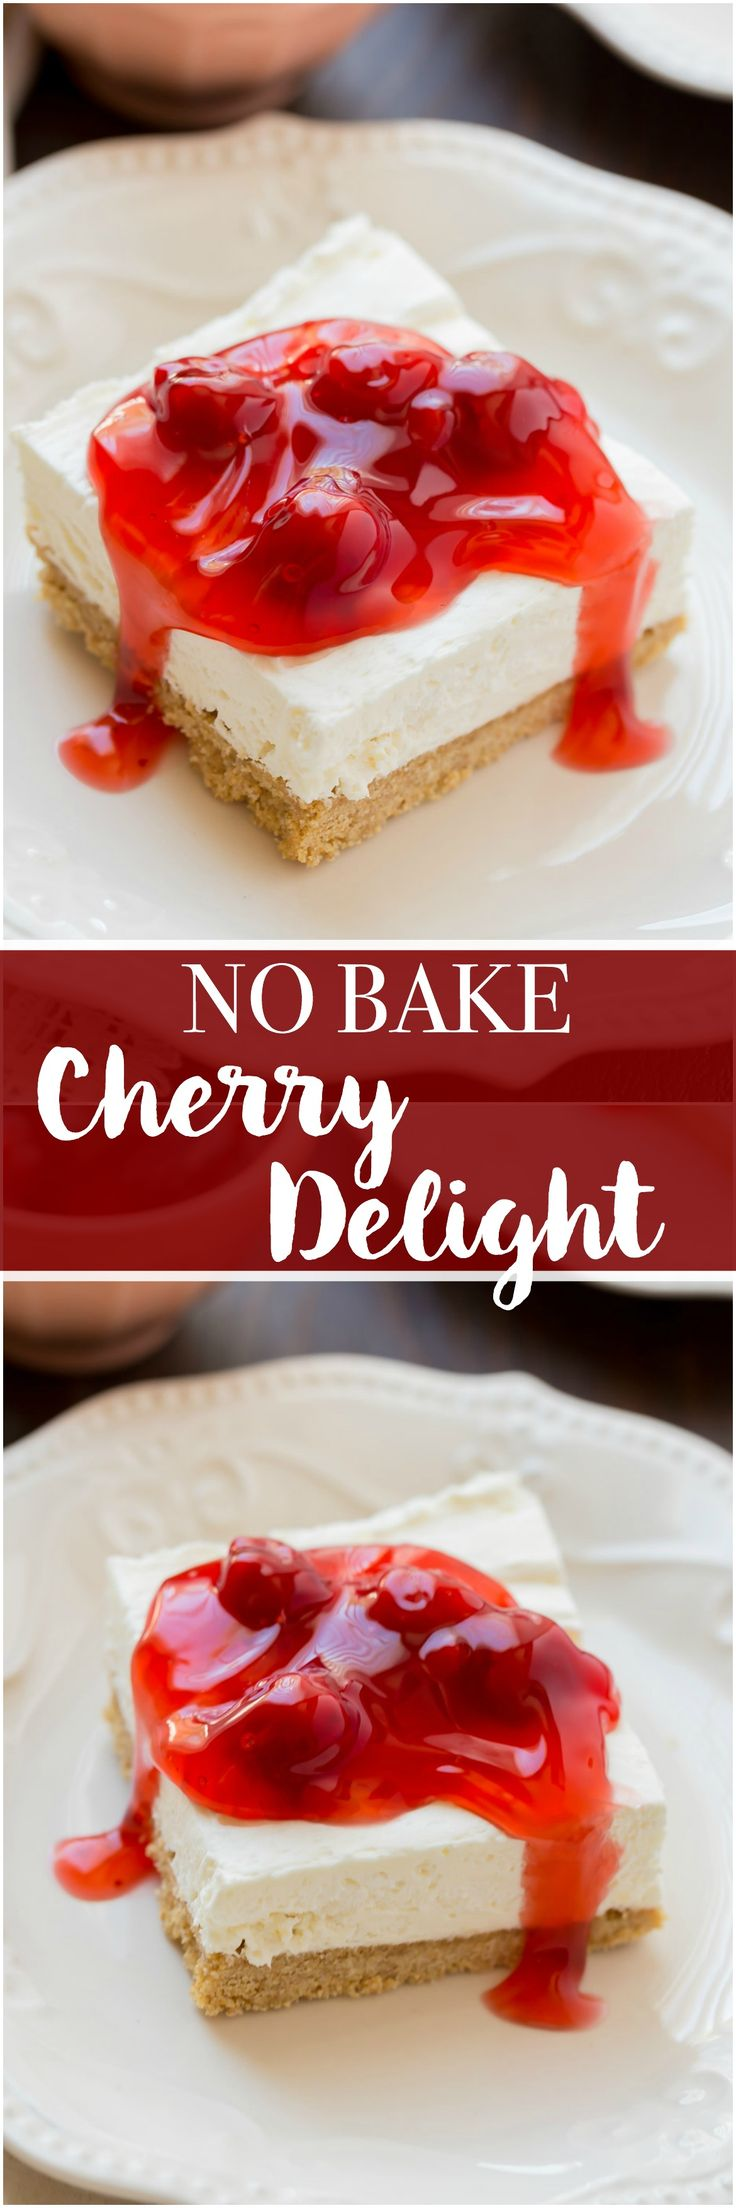 No Bake Cherry Delight is a family favorite. This dessert is a scrumptious no bake dessert and perfect for those hot summer days! #recipes #nobake #cherries #cheesecake #creamcheese (No Bake Icecream Cake)